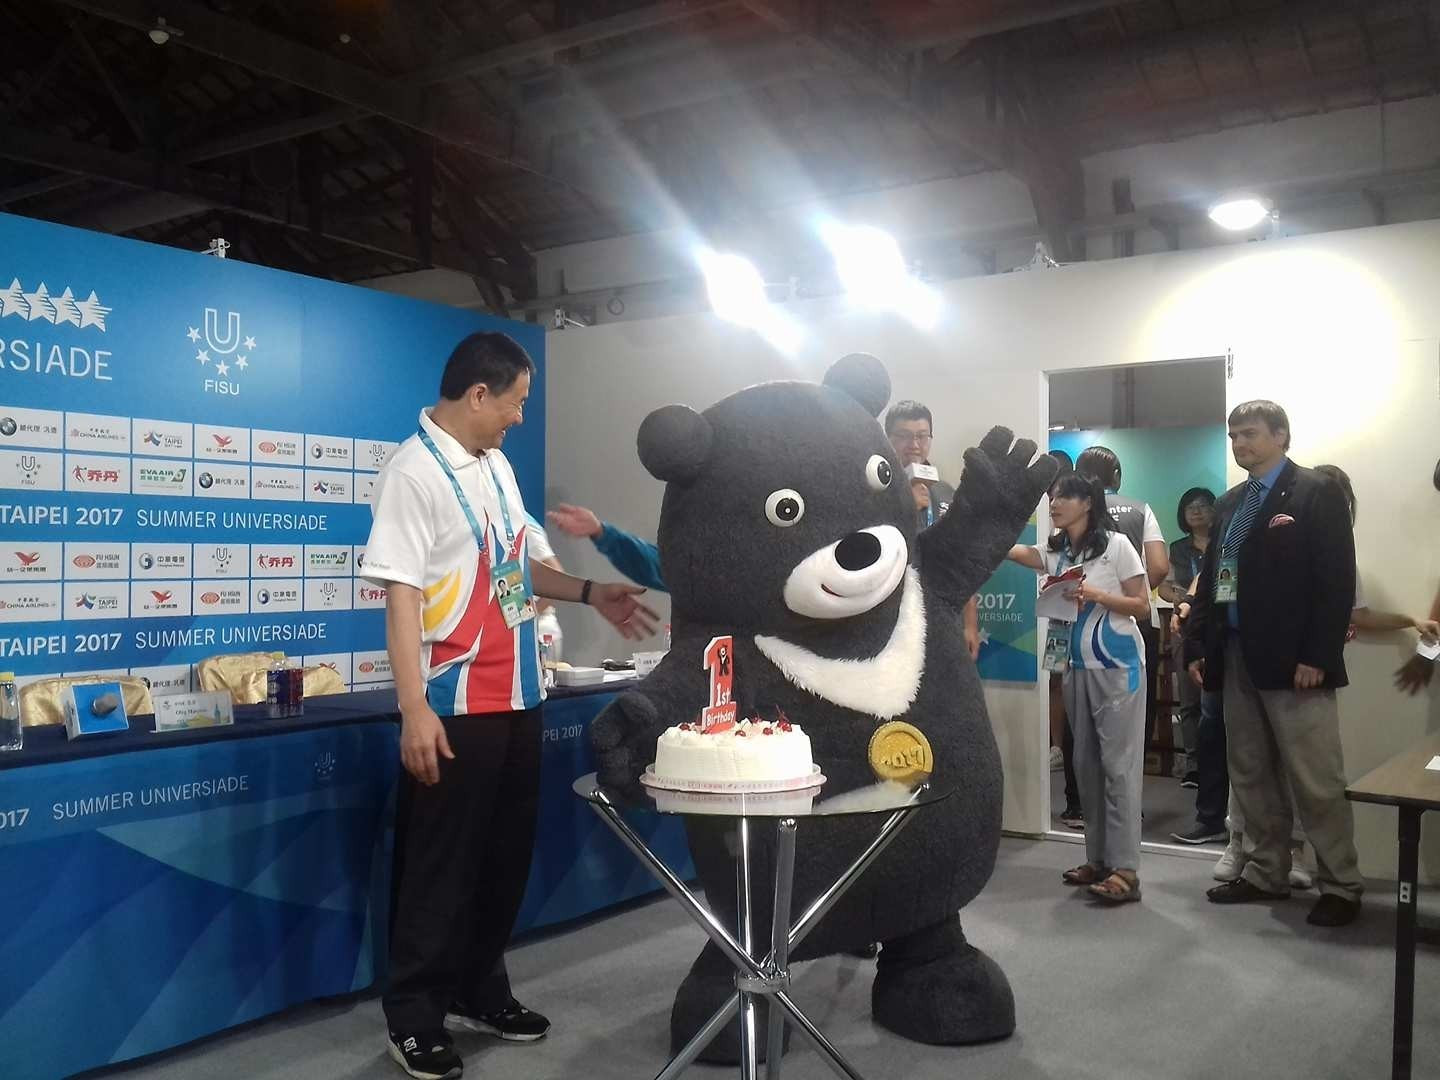 Taipei 2017 mascot in job hunt following conclusion of Summer Universiade